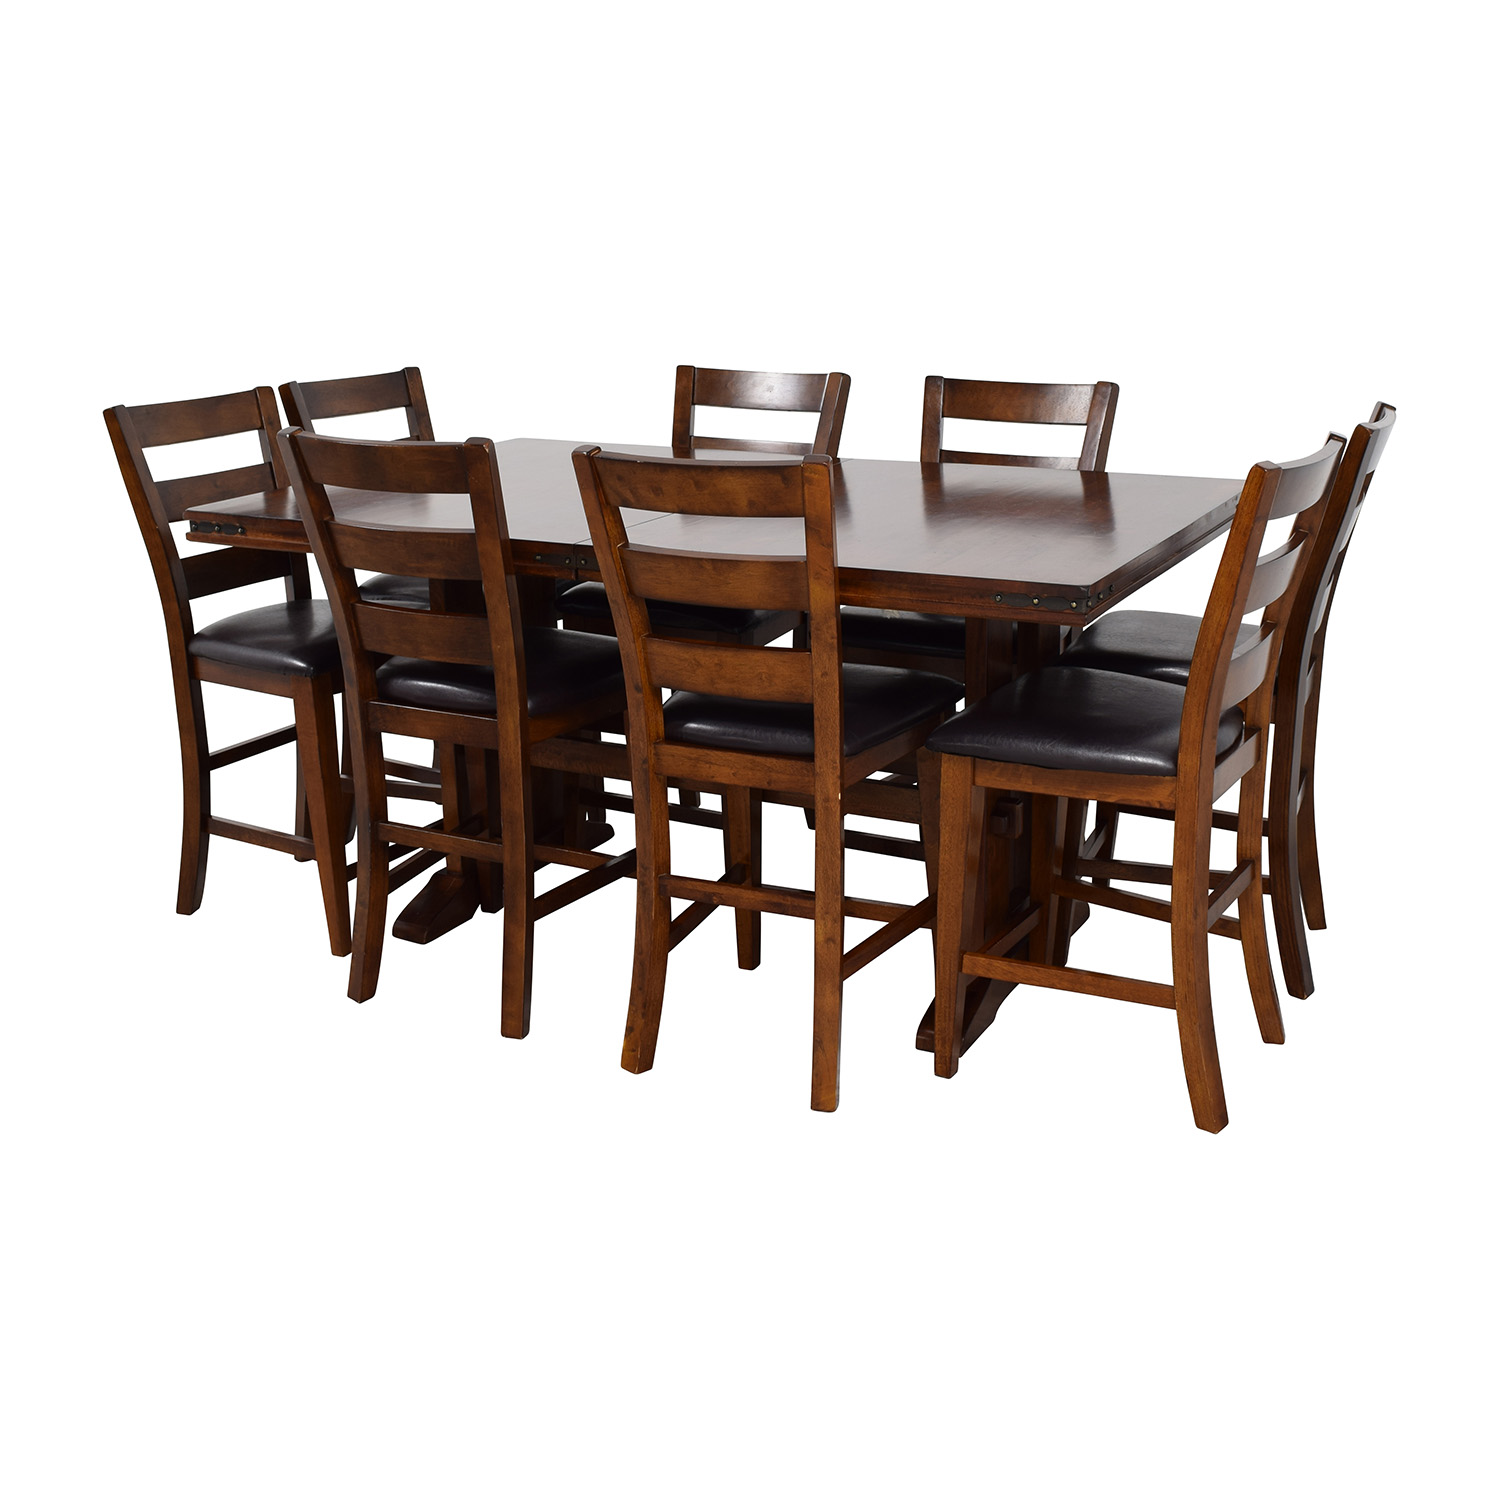 59 Off Bob 39 S Furniture Bob 39 S Furniture Enormous Counter Pub Table Set Tables